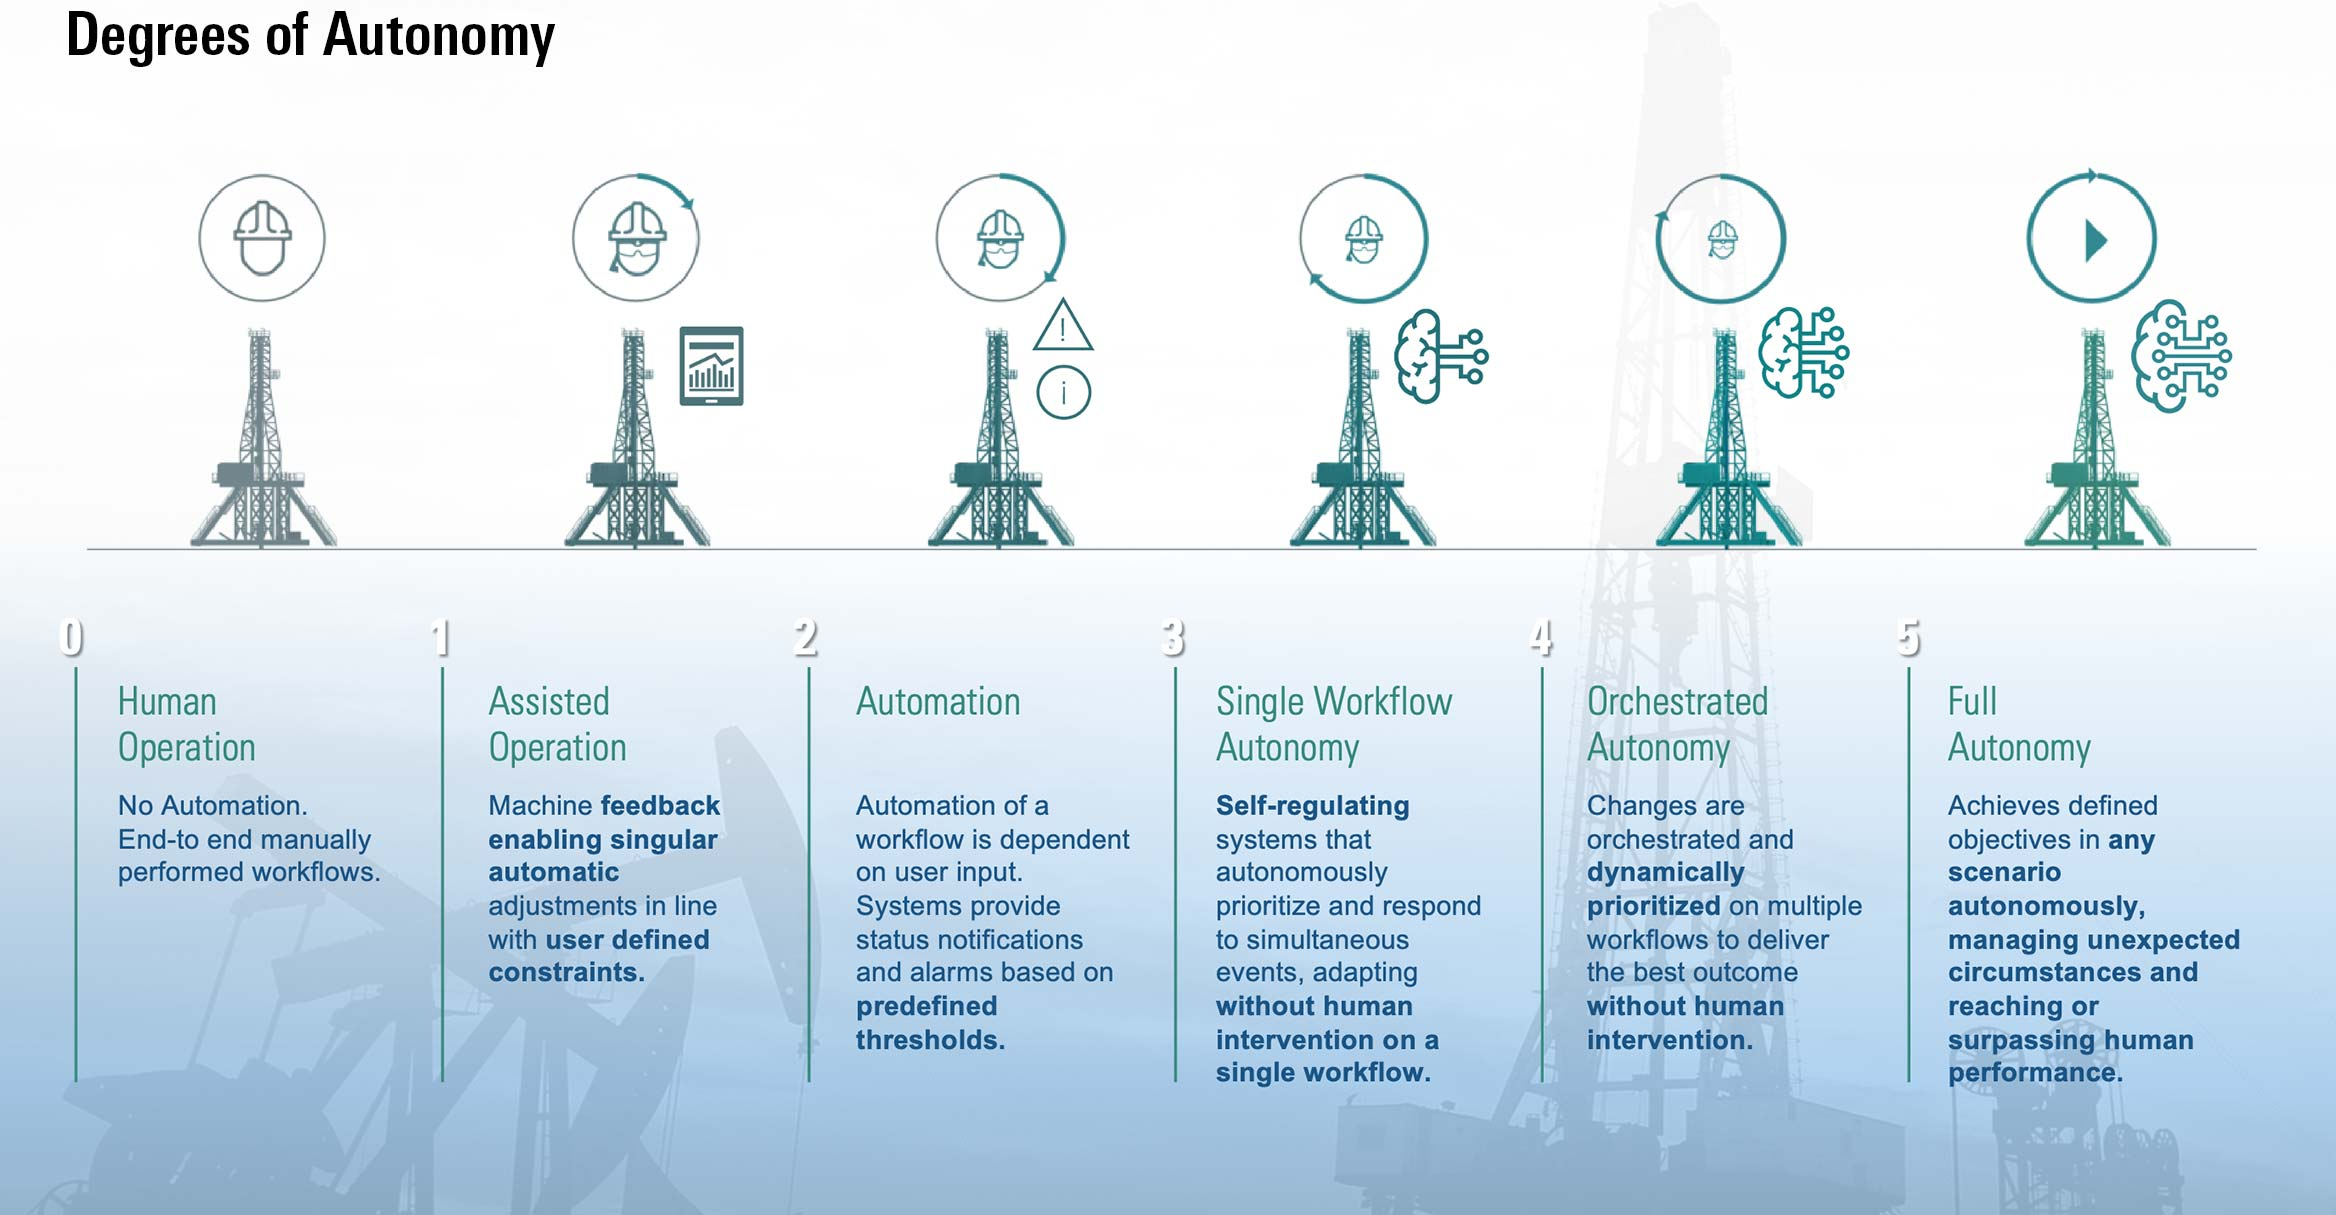 Infographic with 6 rigs in a row showing the dregrees of autonomy